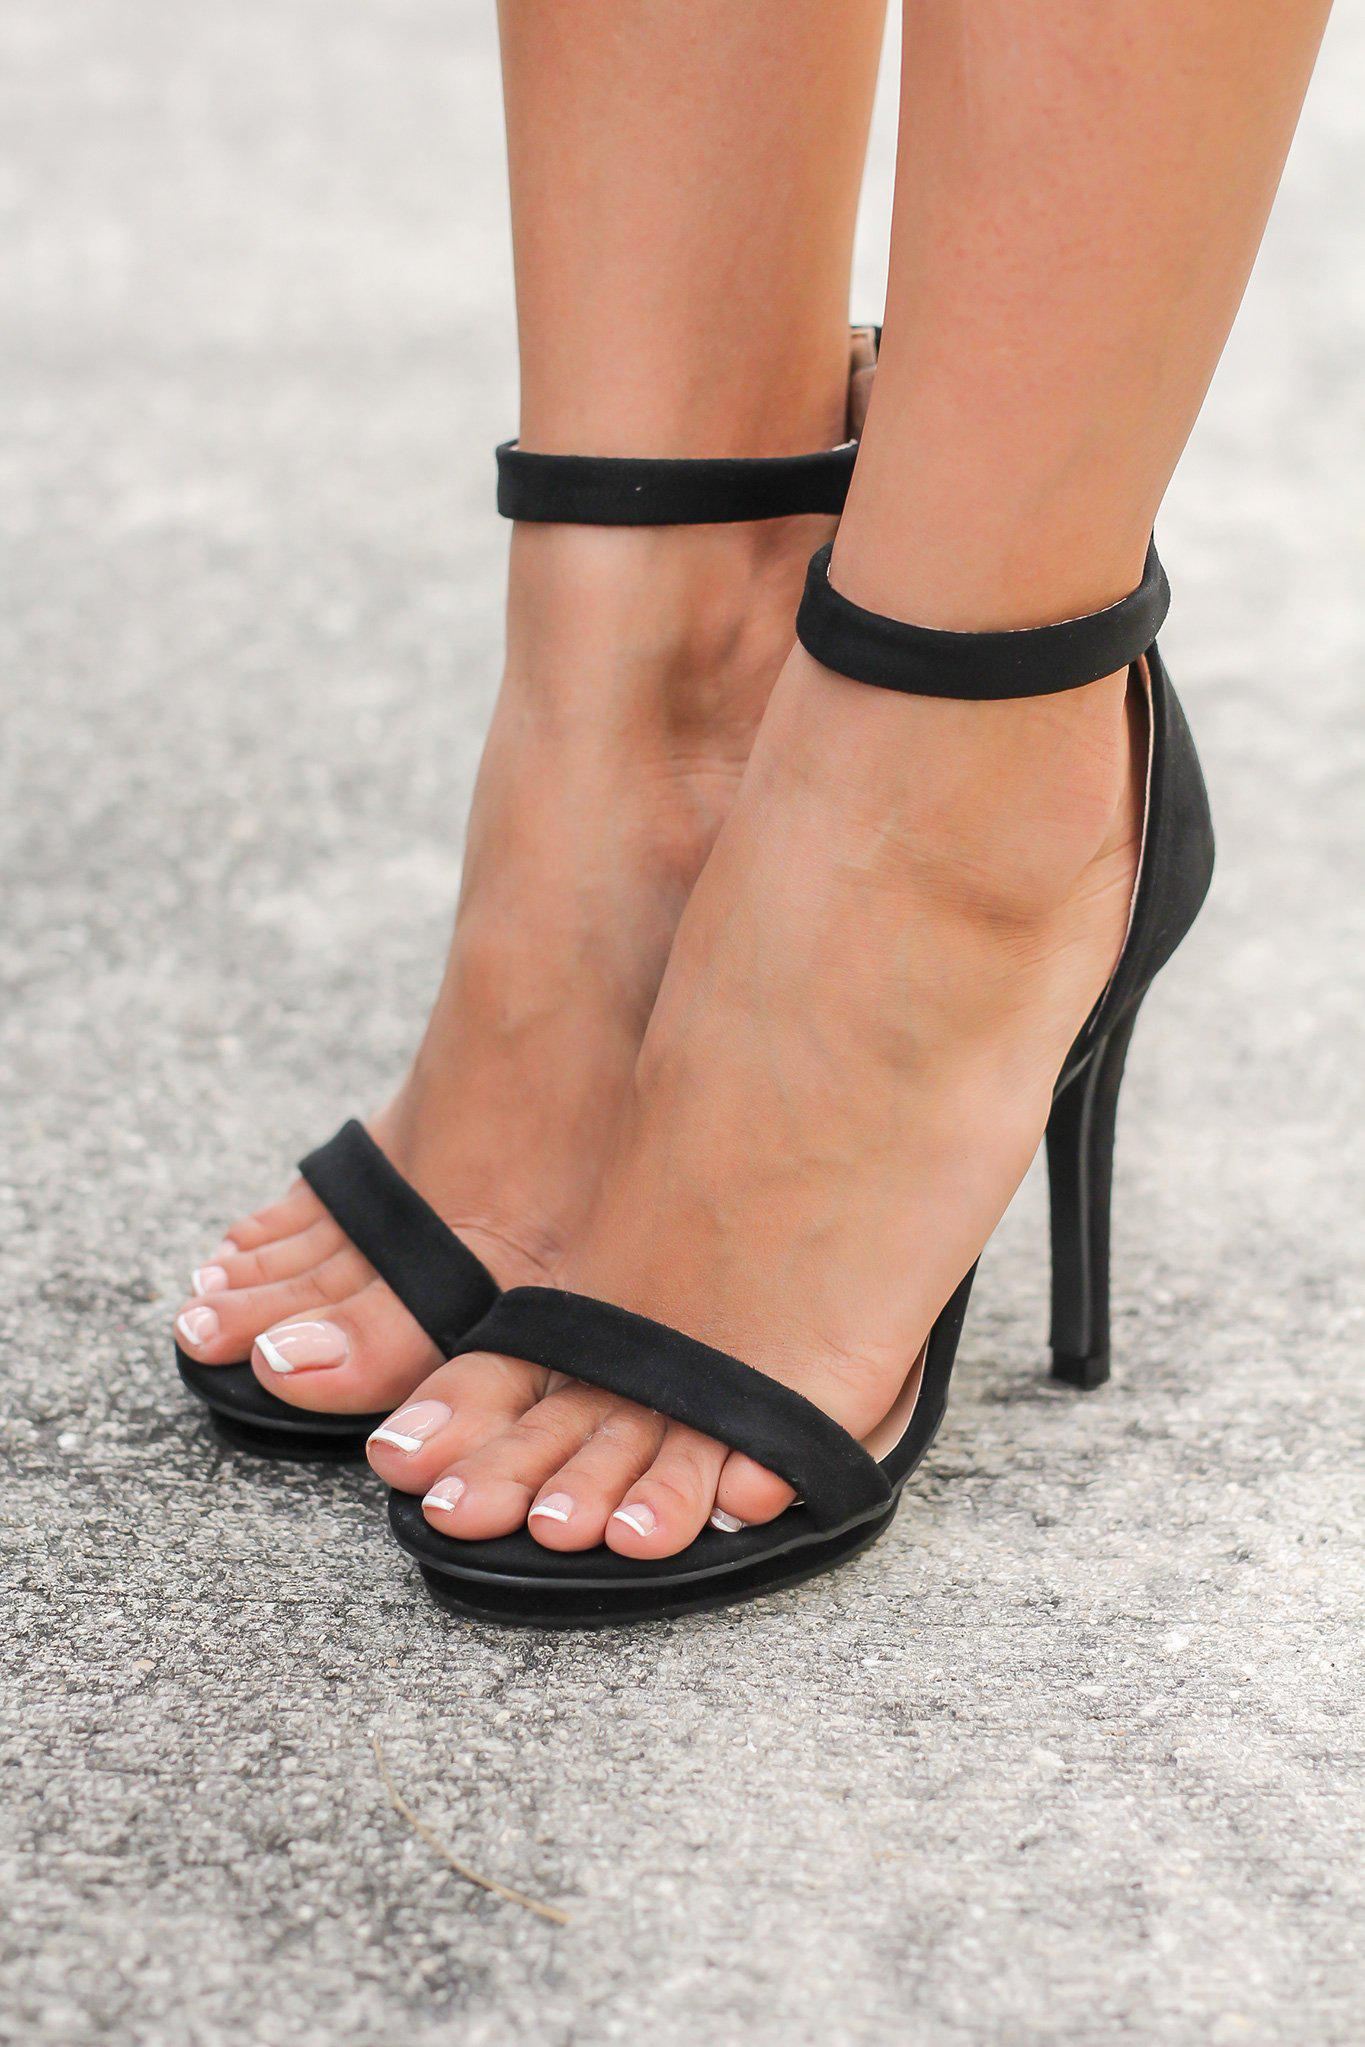 Black Ankle Strap Heels with Zipper